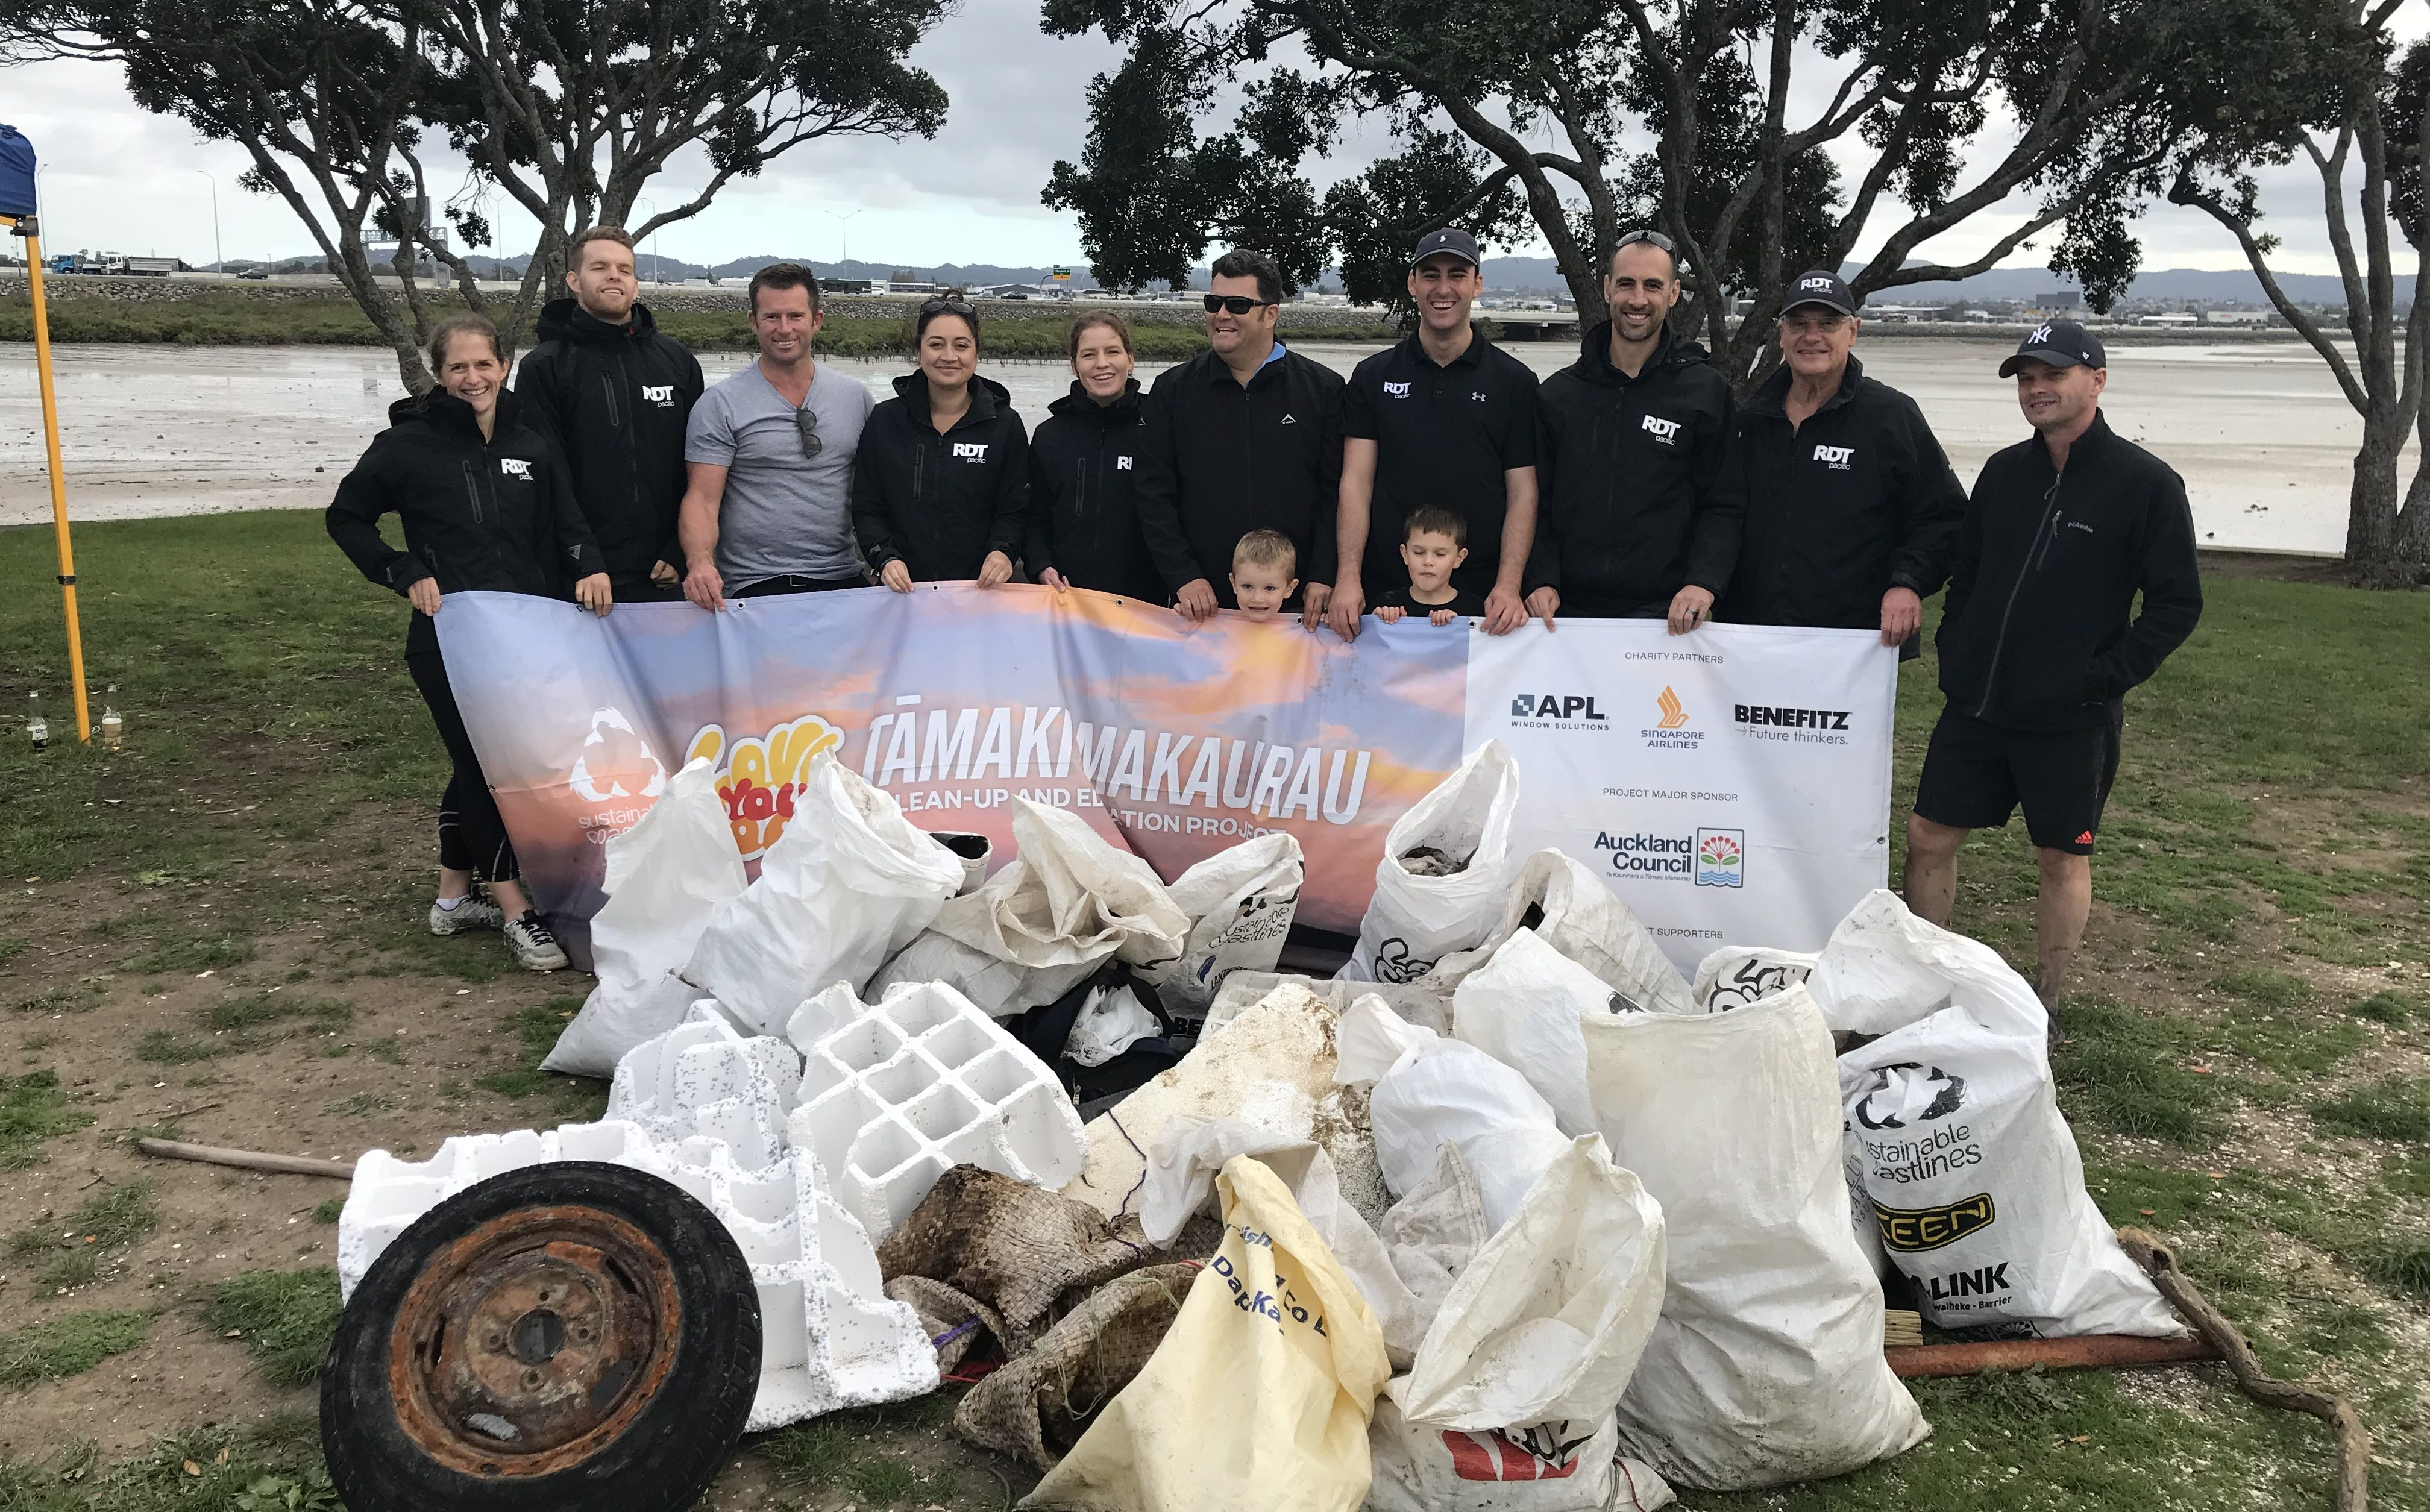 Sustianable Coastlines Corporate Social Responsibility Charity